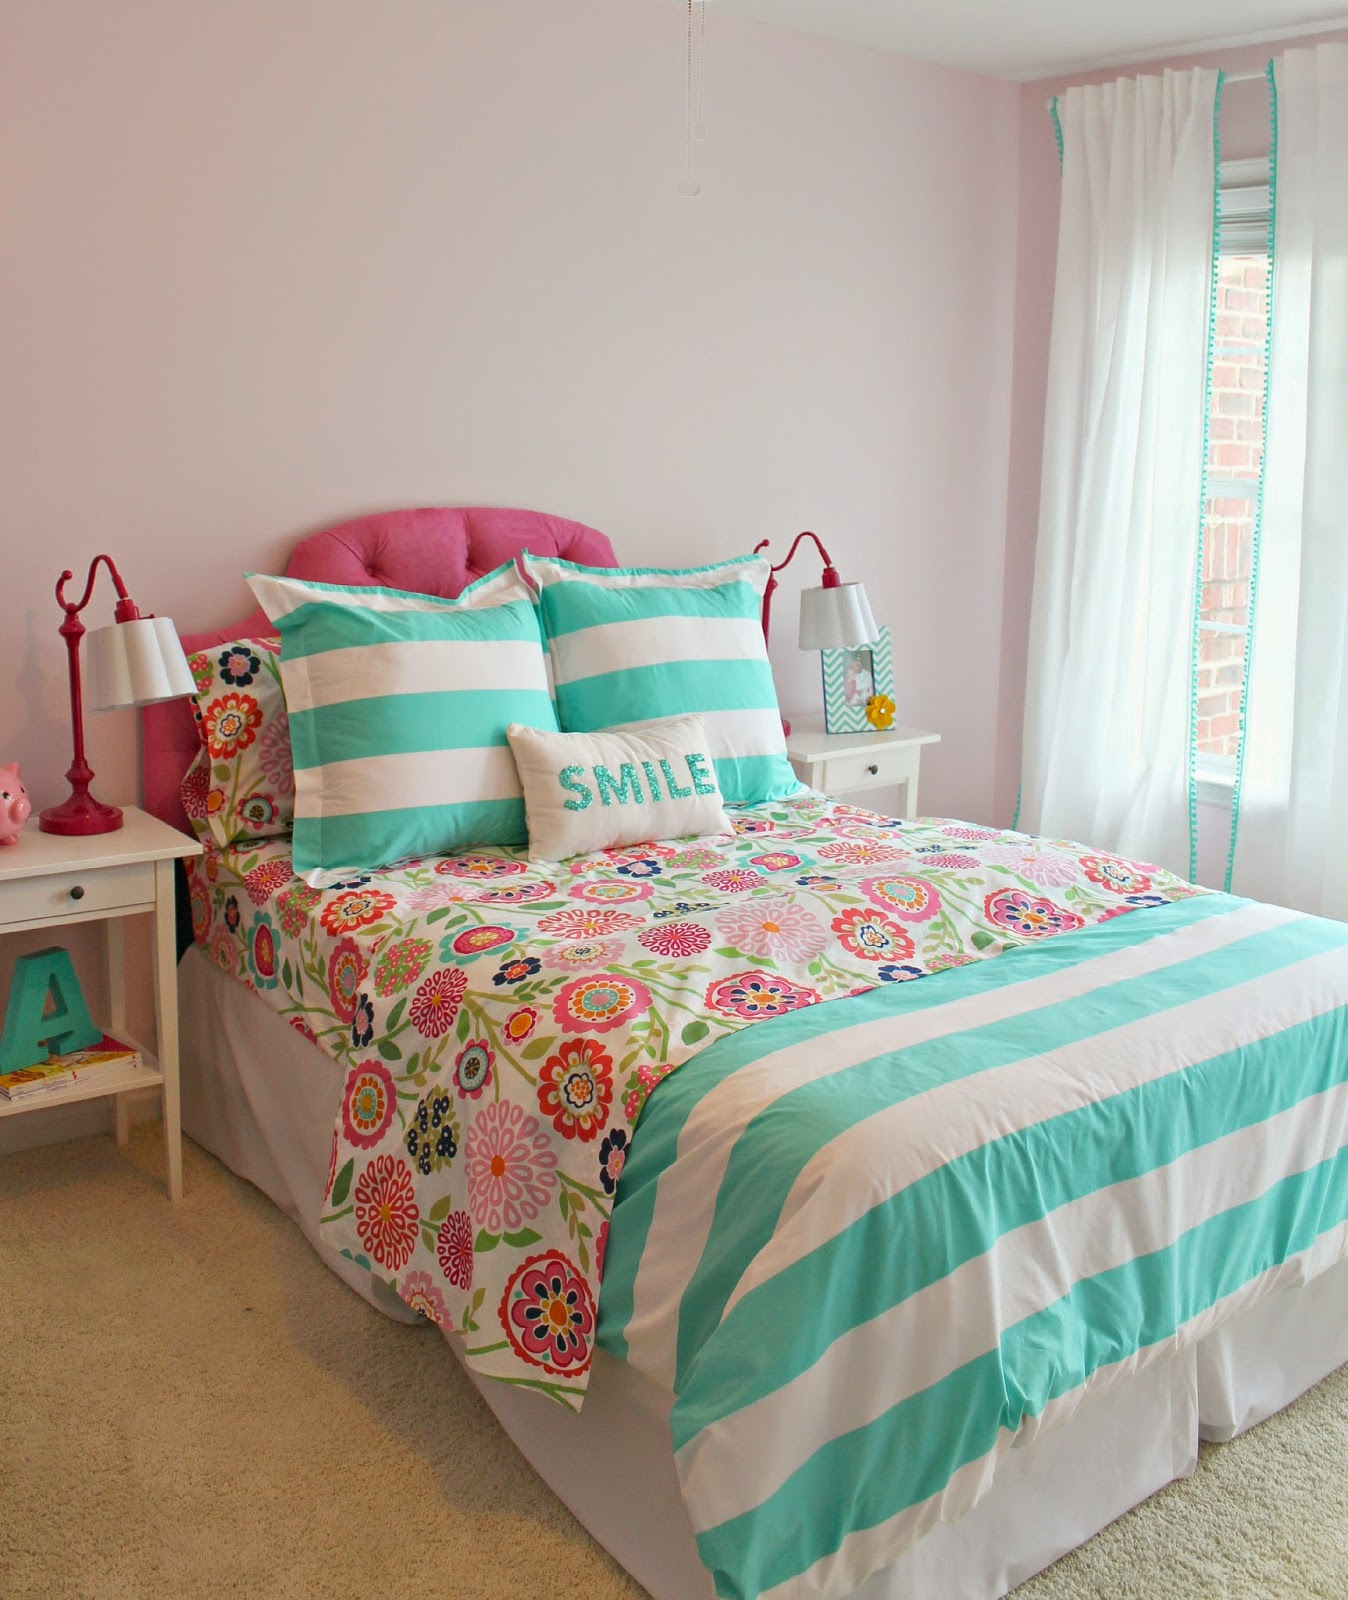 Pom Pom Bedding Carolina On My Mind Hadley 39s Nursery Big Girl Bedroom